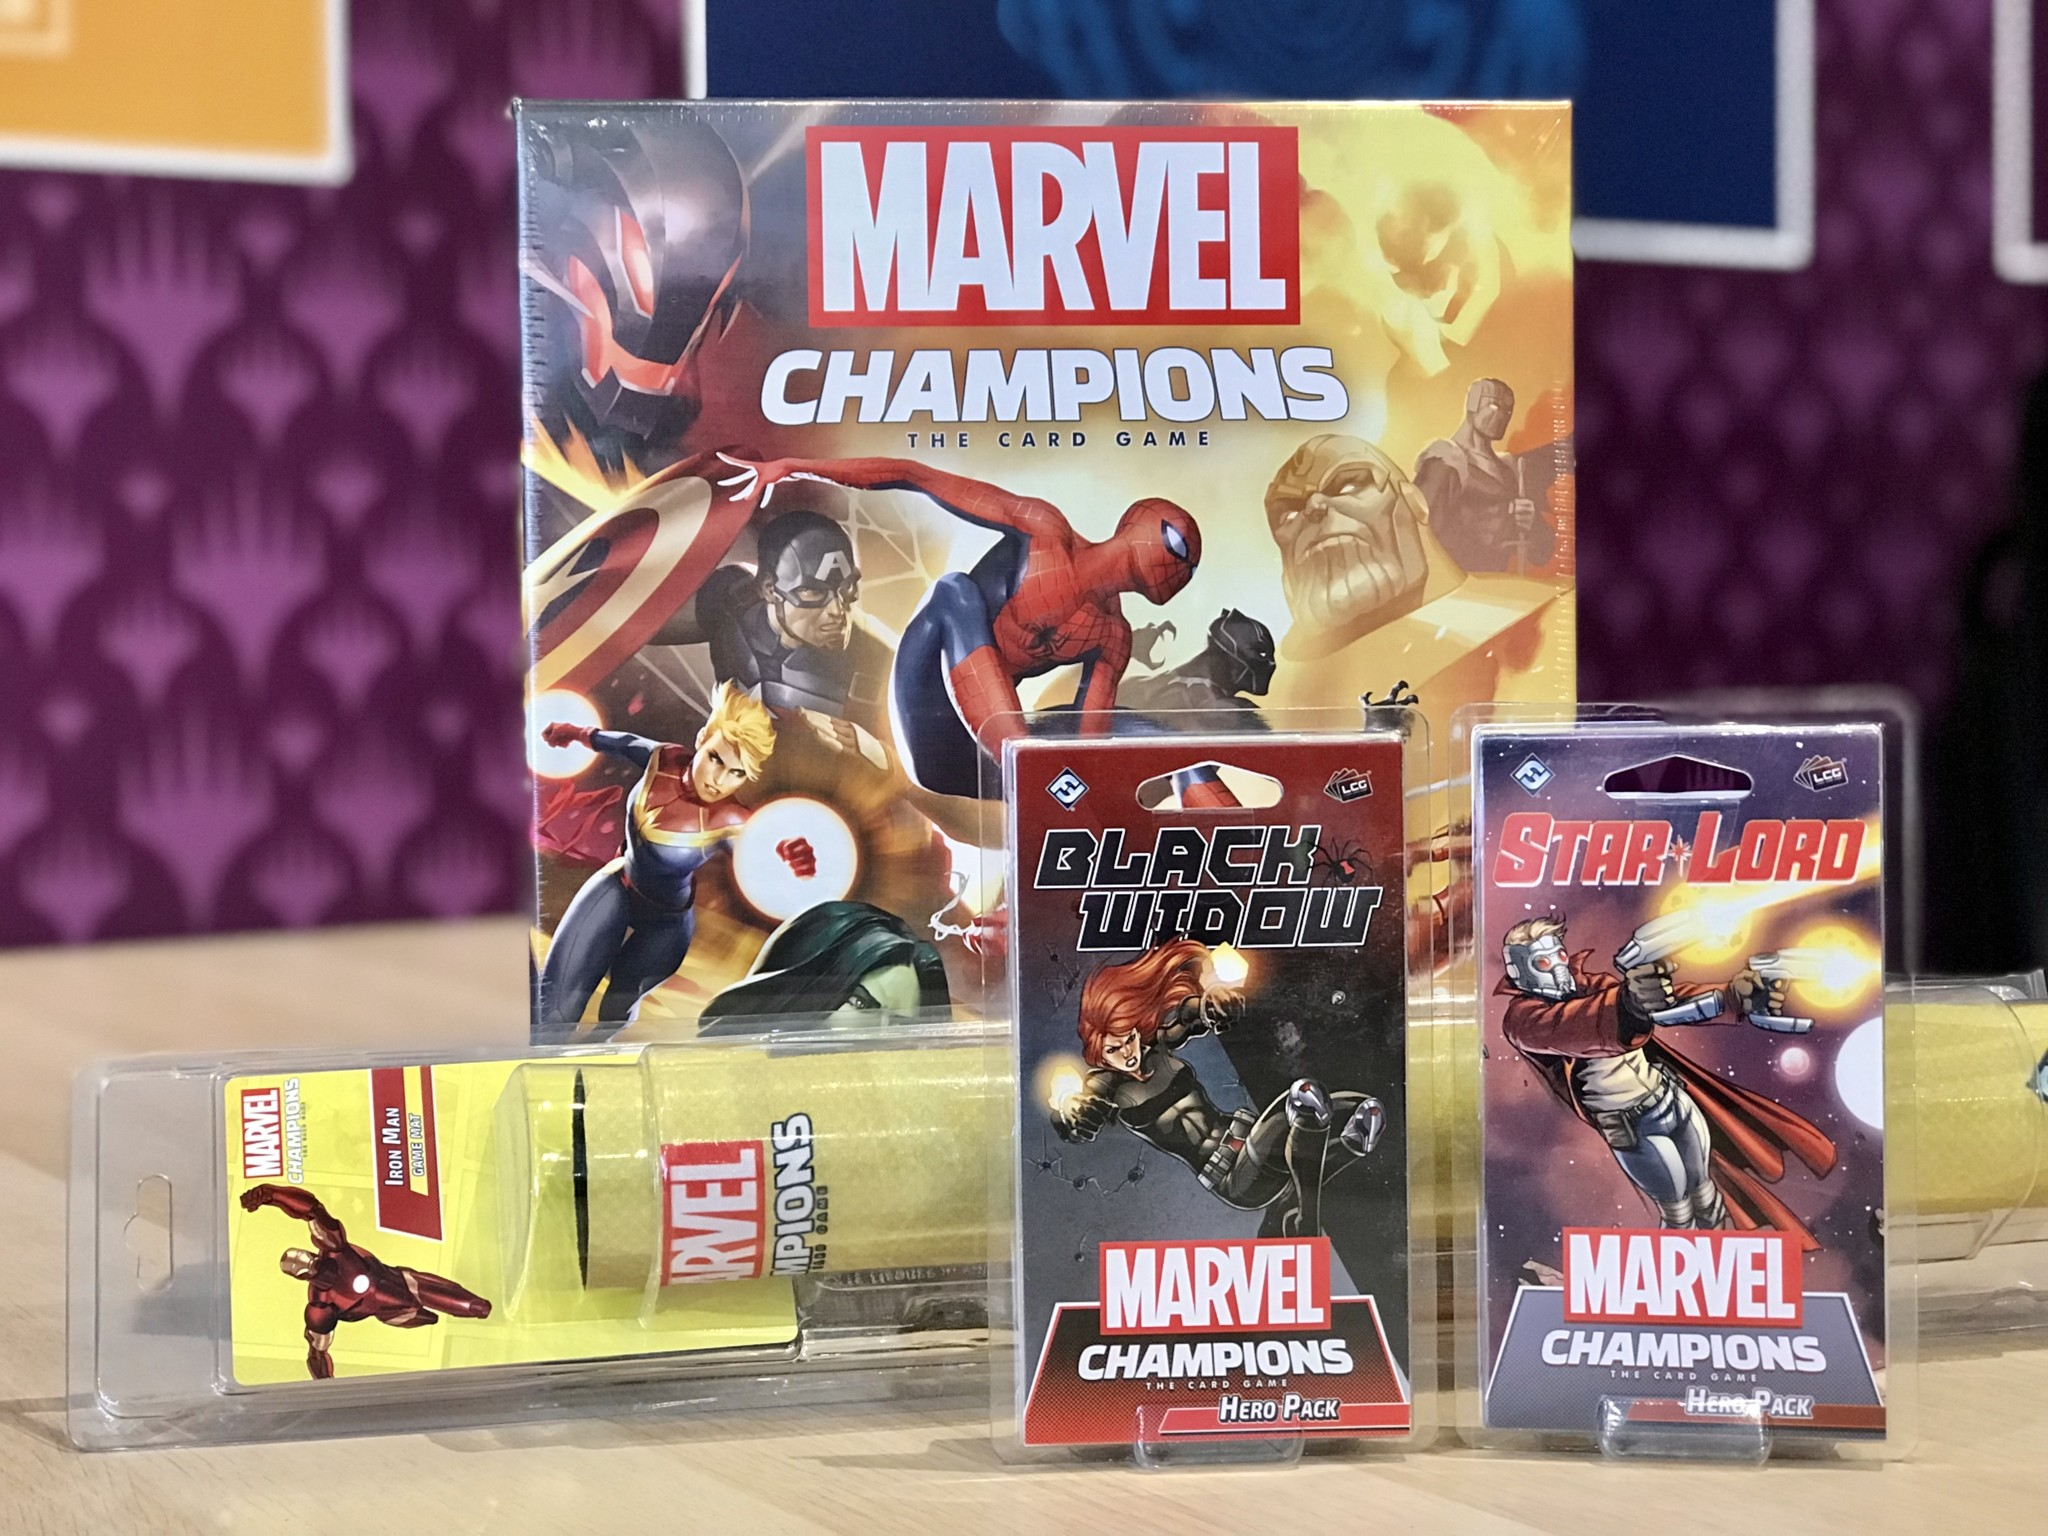 Bring Black Widow Home with our Favorite Marvel Games